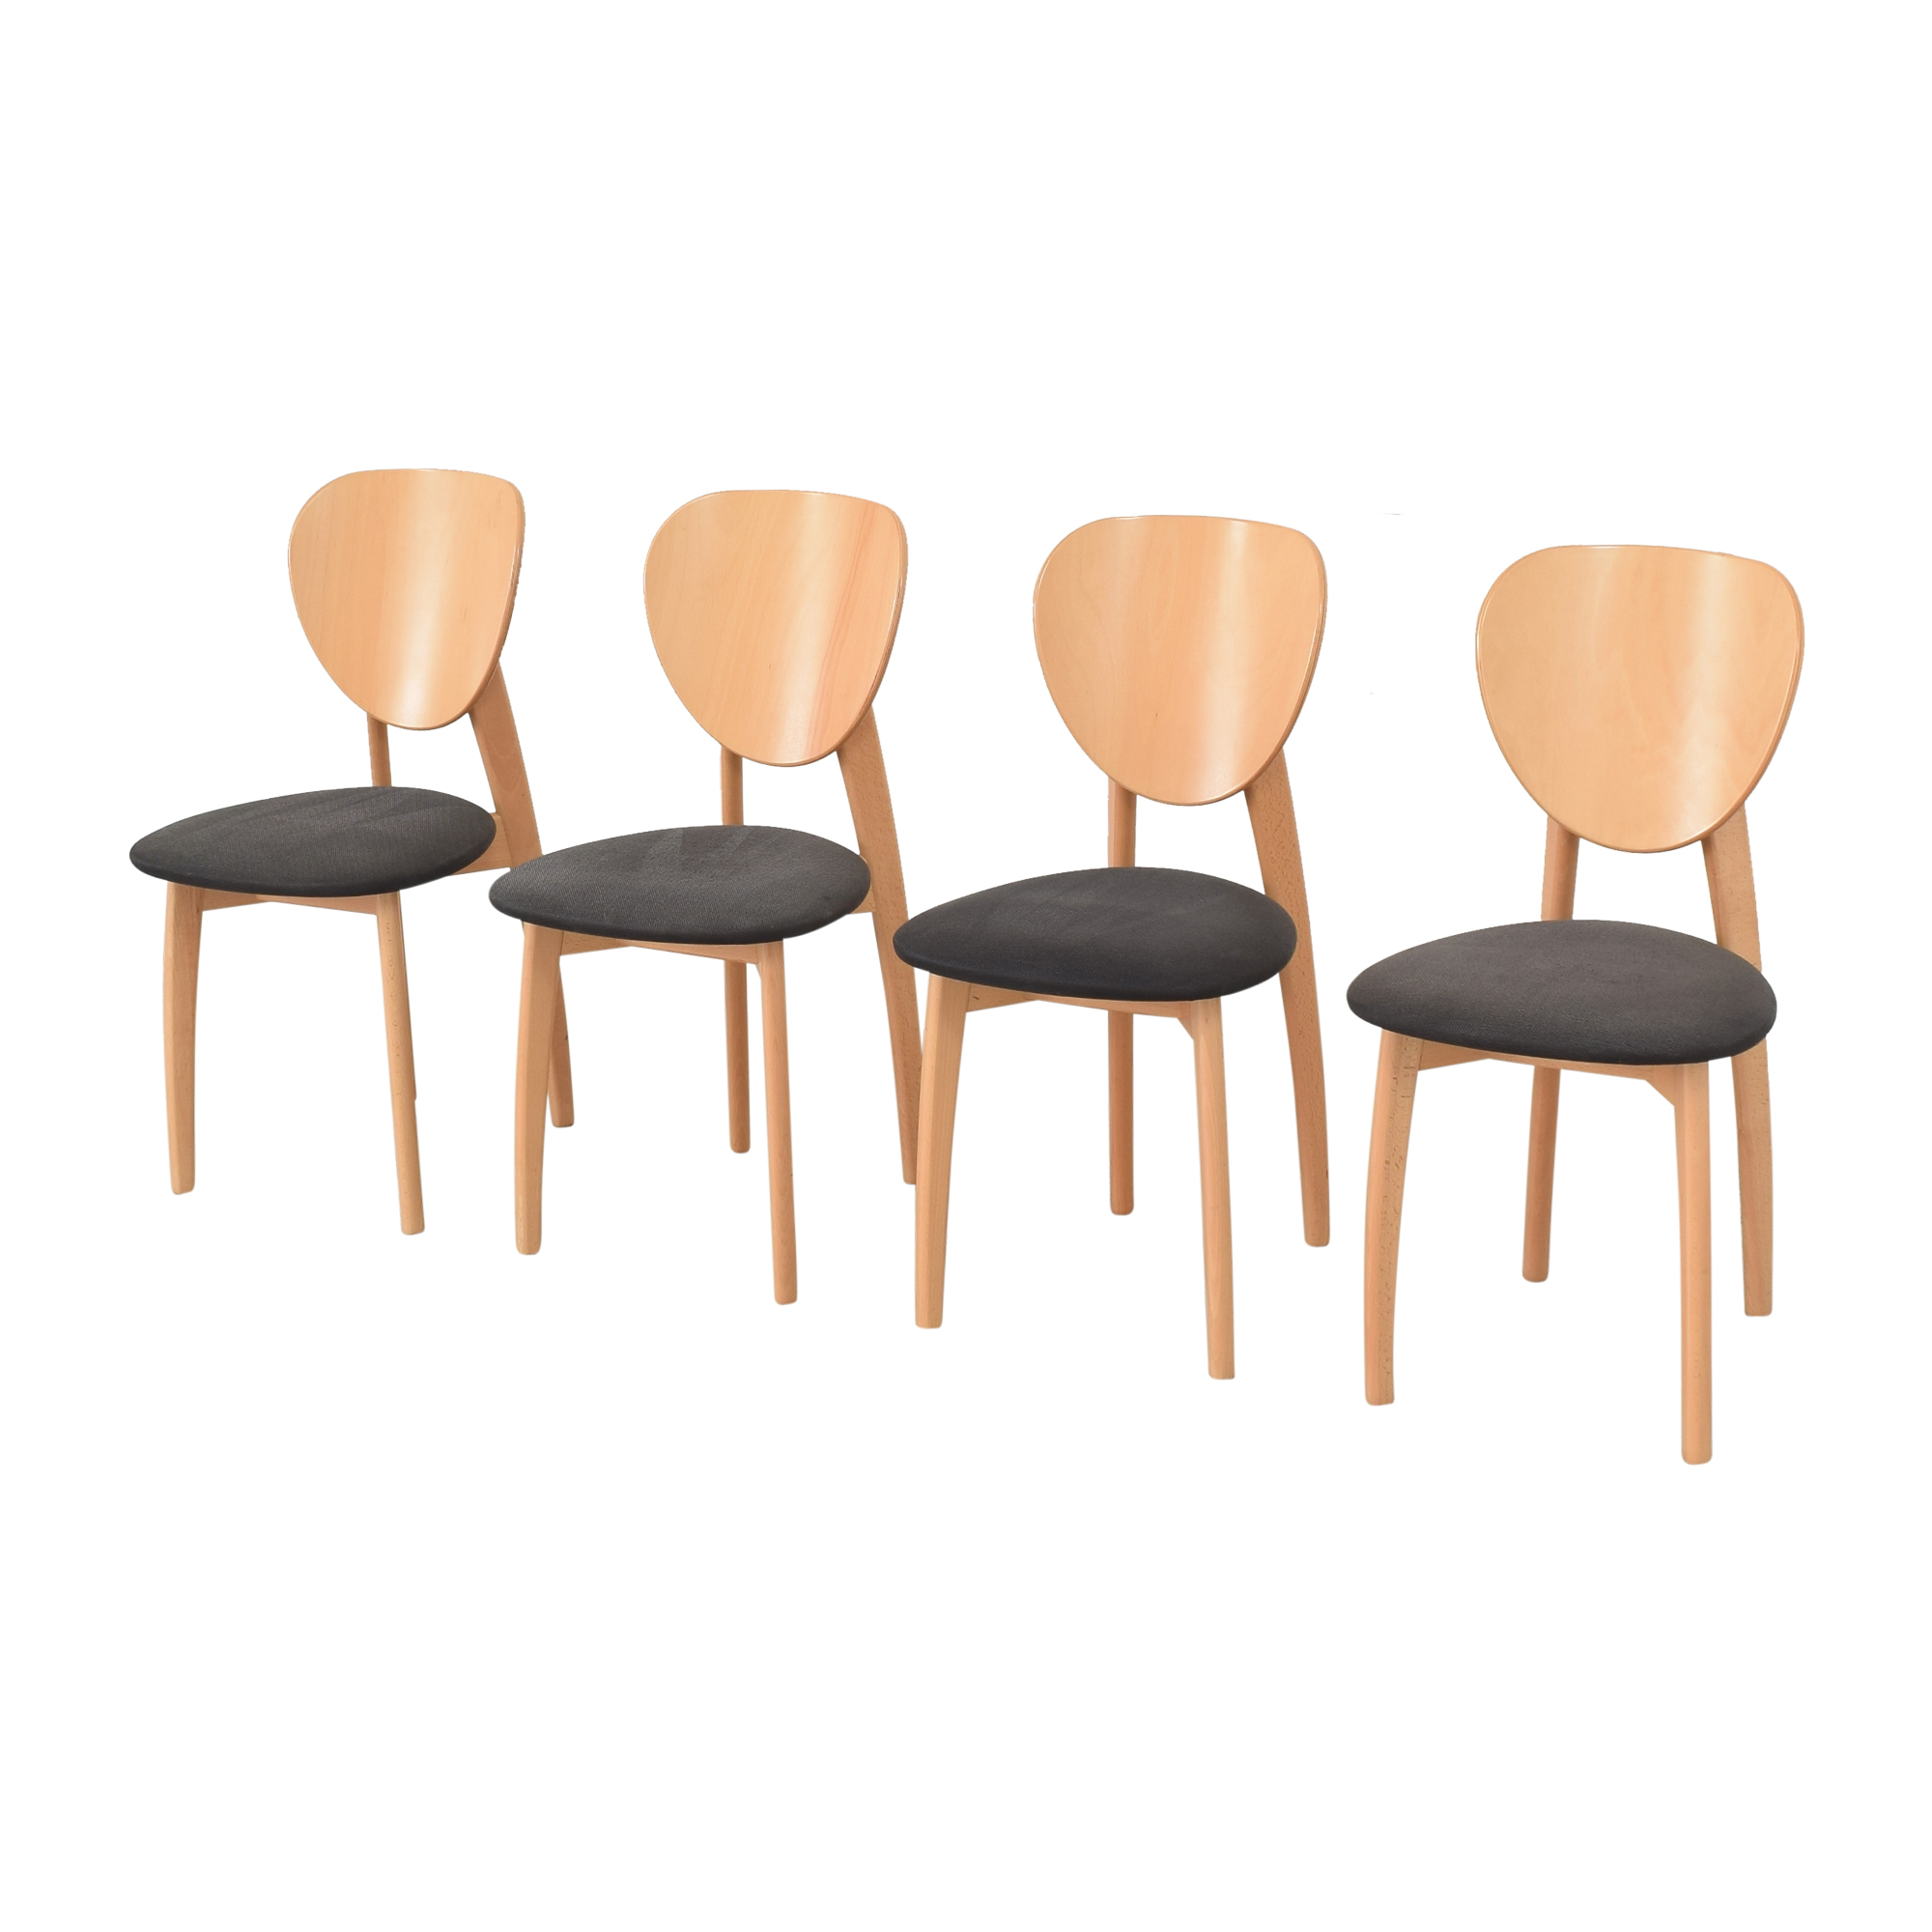 Calligaris Modern Dining Chairs Calligaris